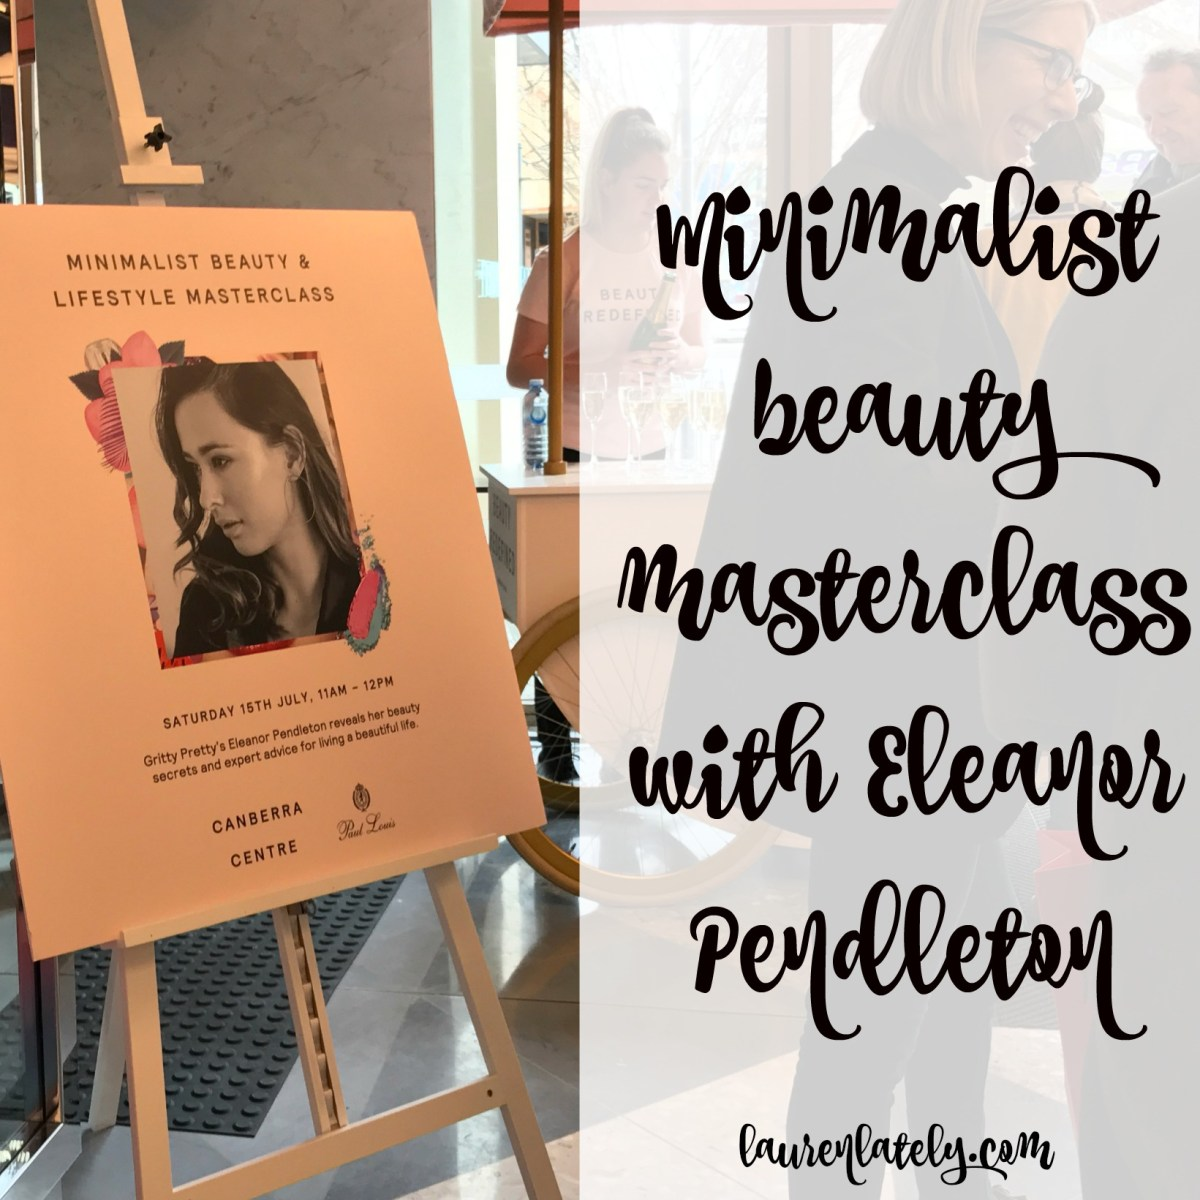 Minimalist beauty masterclass with Eleanor Pendleton from Gritty Pretty